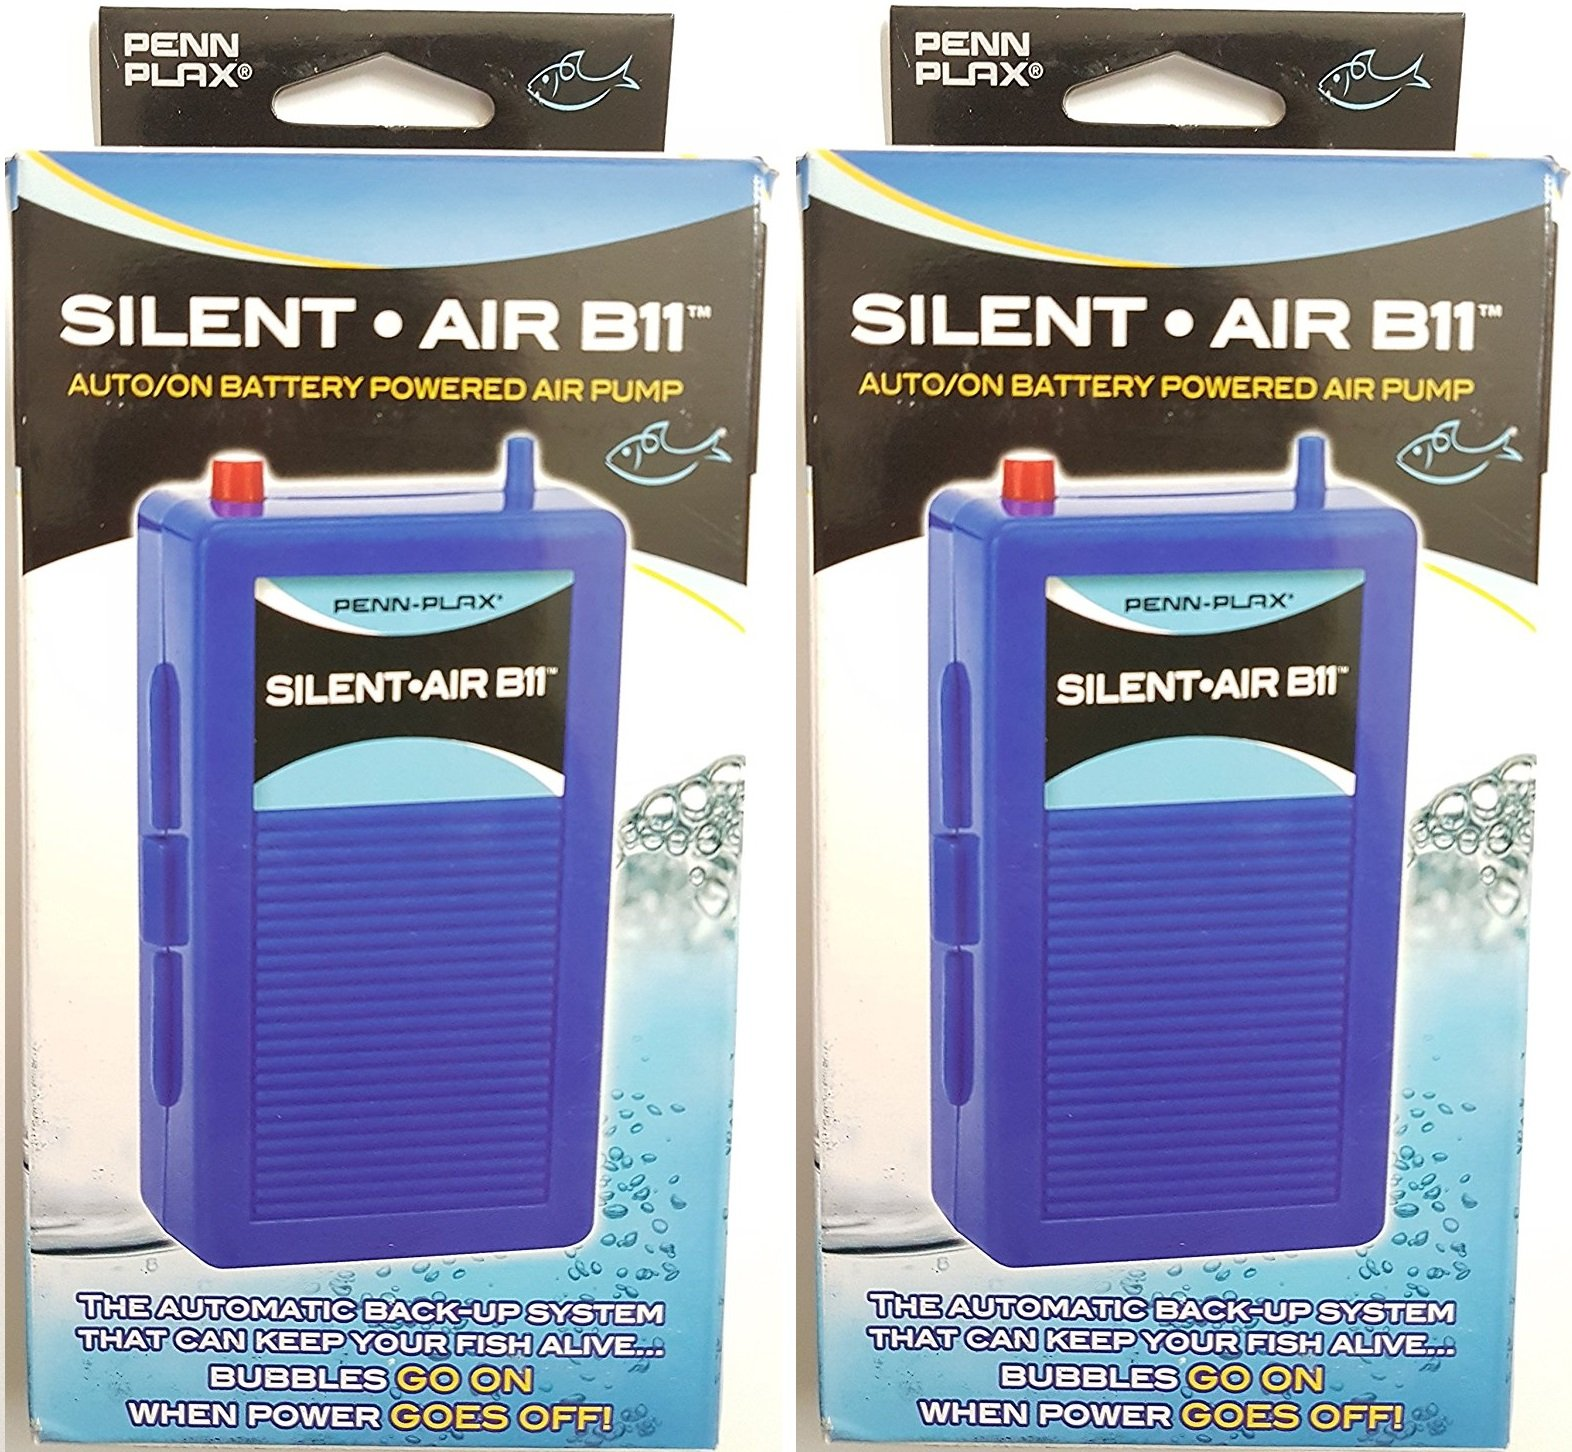 (2 Pack) Silent Air B11 Battery Operated Aquarium Air Pump For Power Outage Automatic Turn On Keeps Fish Safe Up to 29 Gallons by Penn Plax